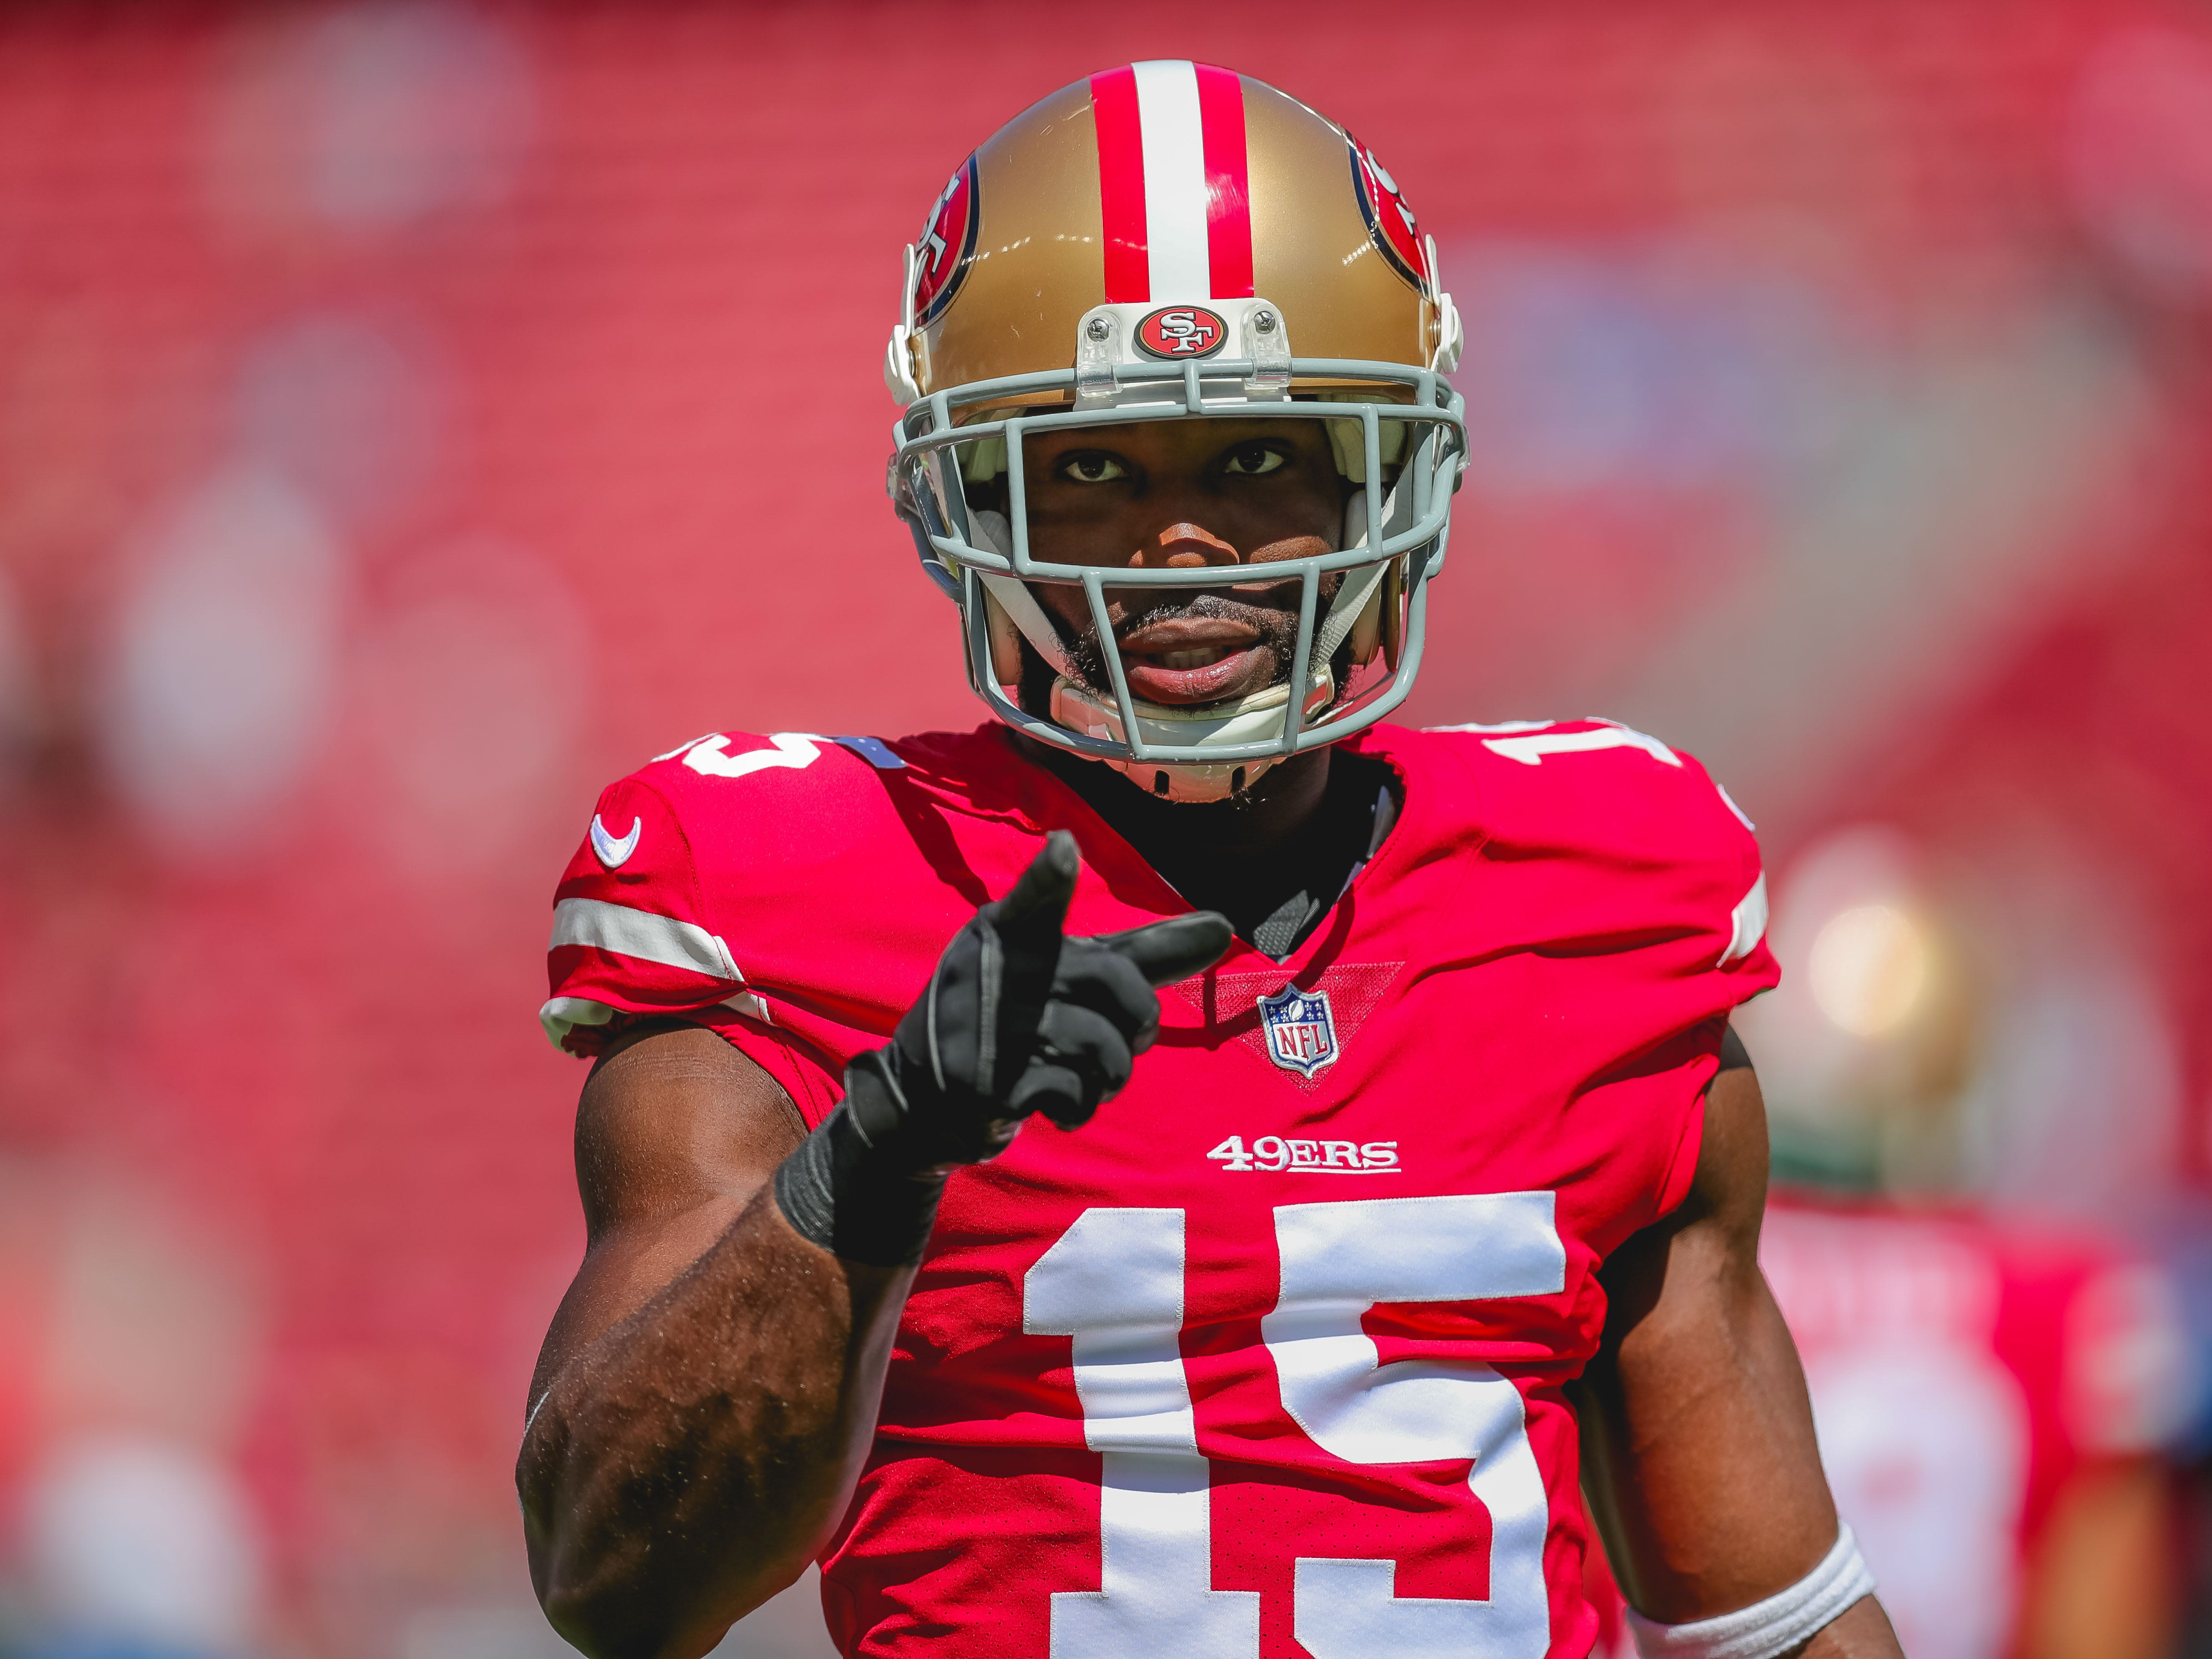 Pierre Garcon, WR, San Francisco 49ers (knee, out for season)